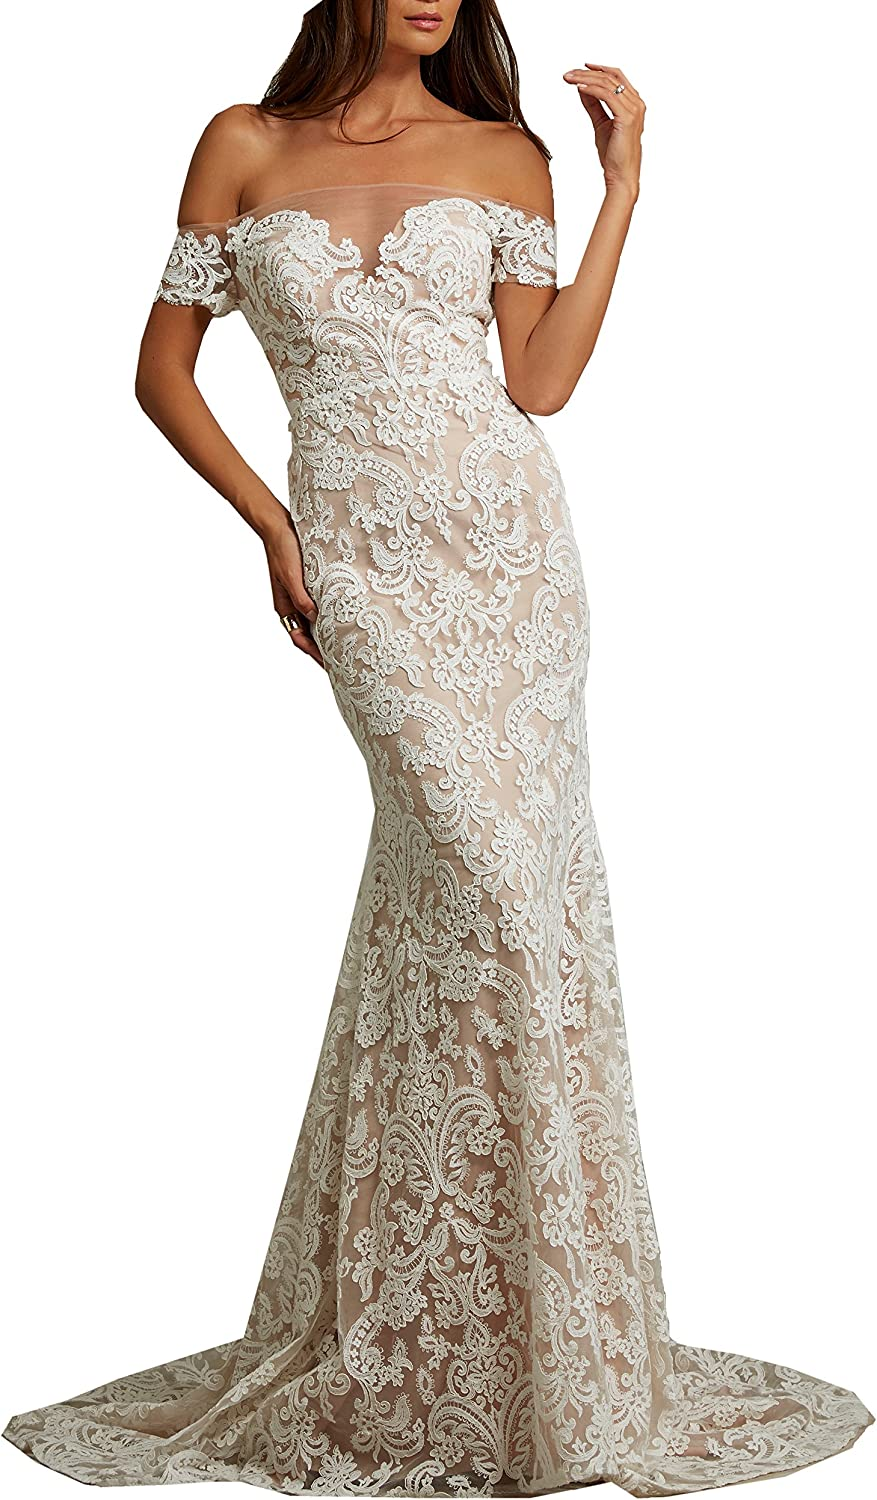 Heartgown 2018 Women's Off The Shoulder Lace Bohemian Wedding Dress for Bride Mermaid Style Chapel Train with Sleeves